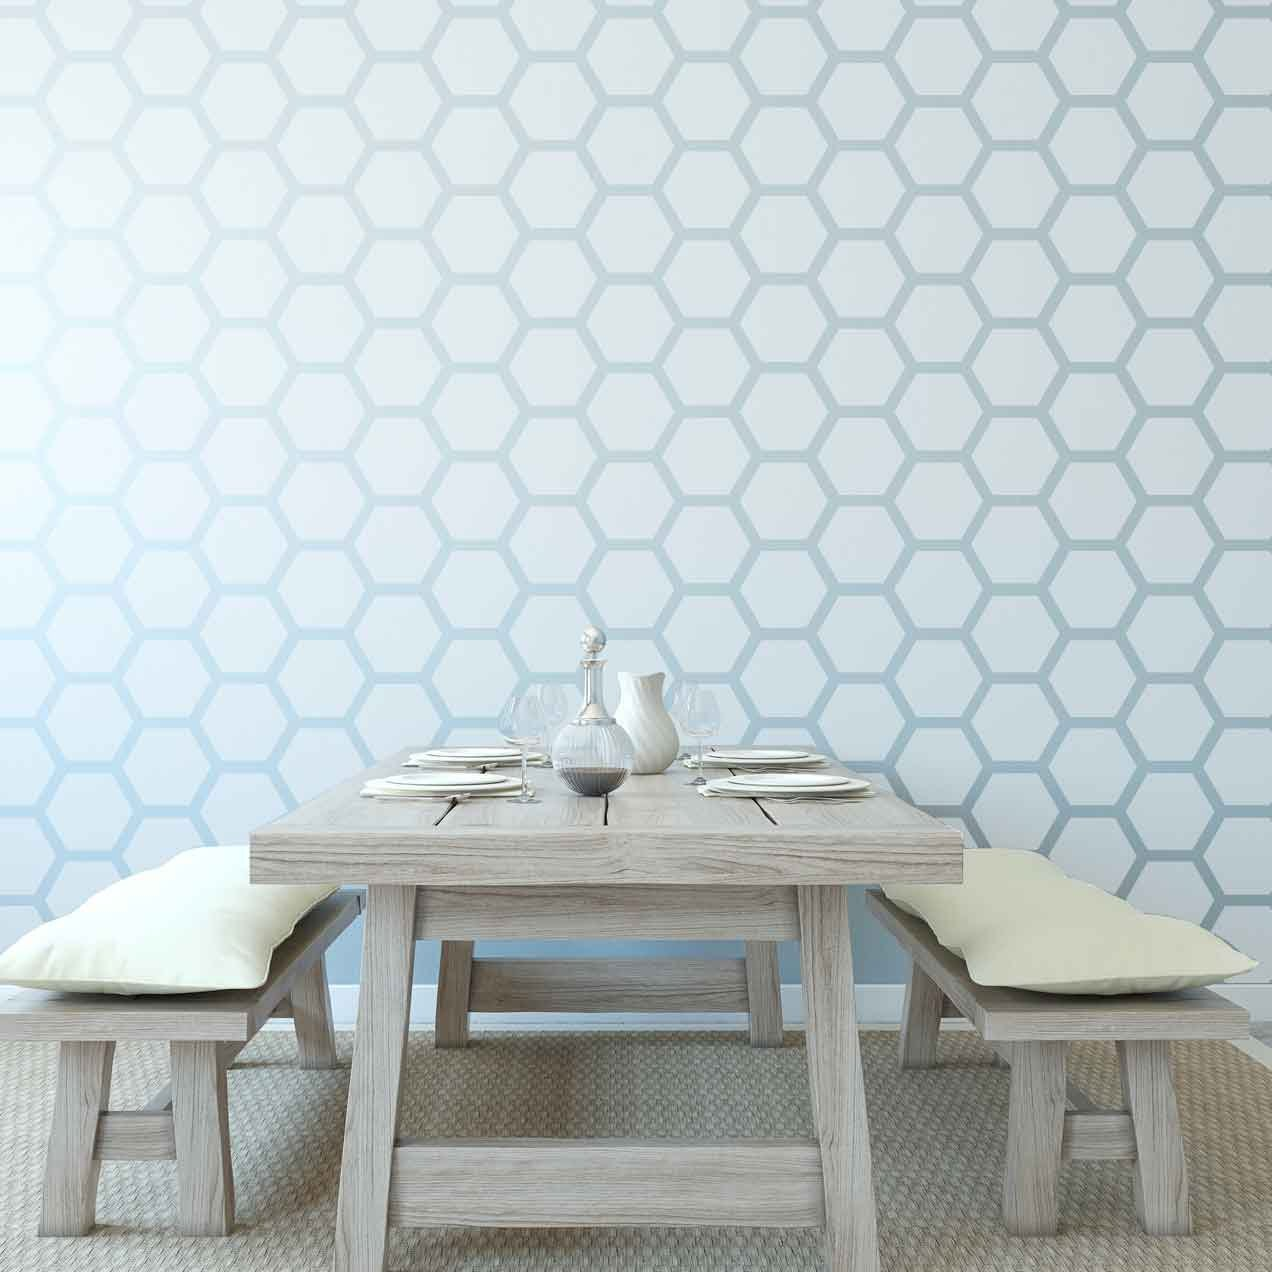 Honey Comb Wall Paper Beehive Shoppe.jpg